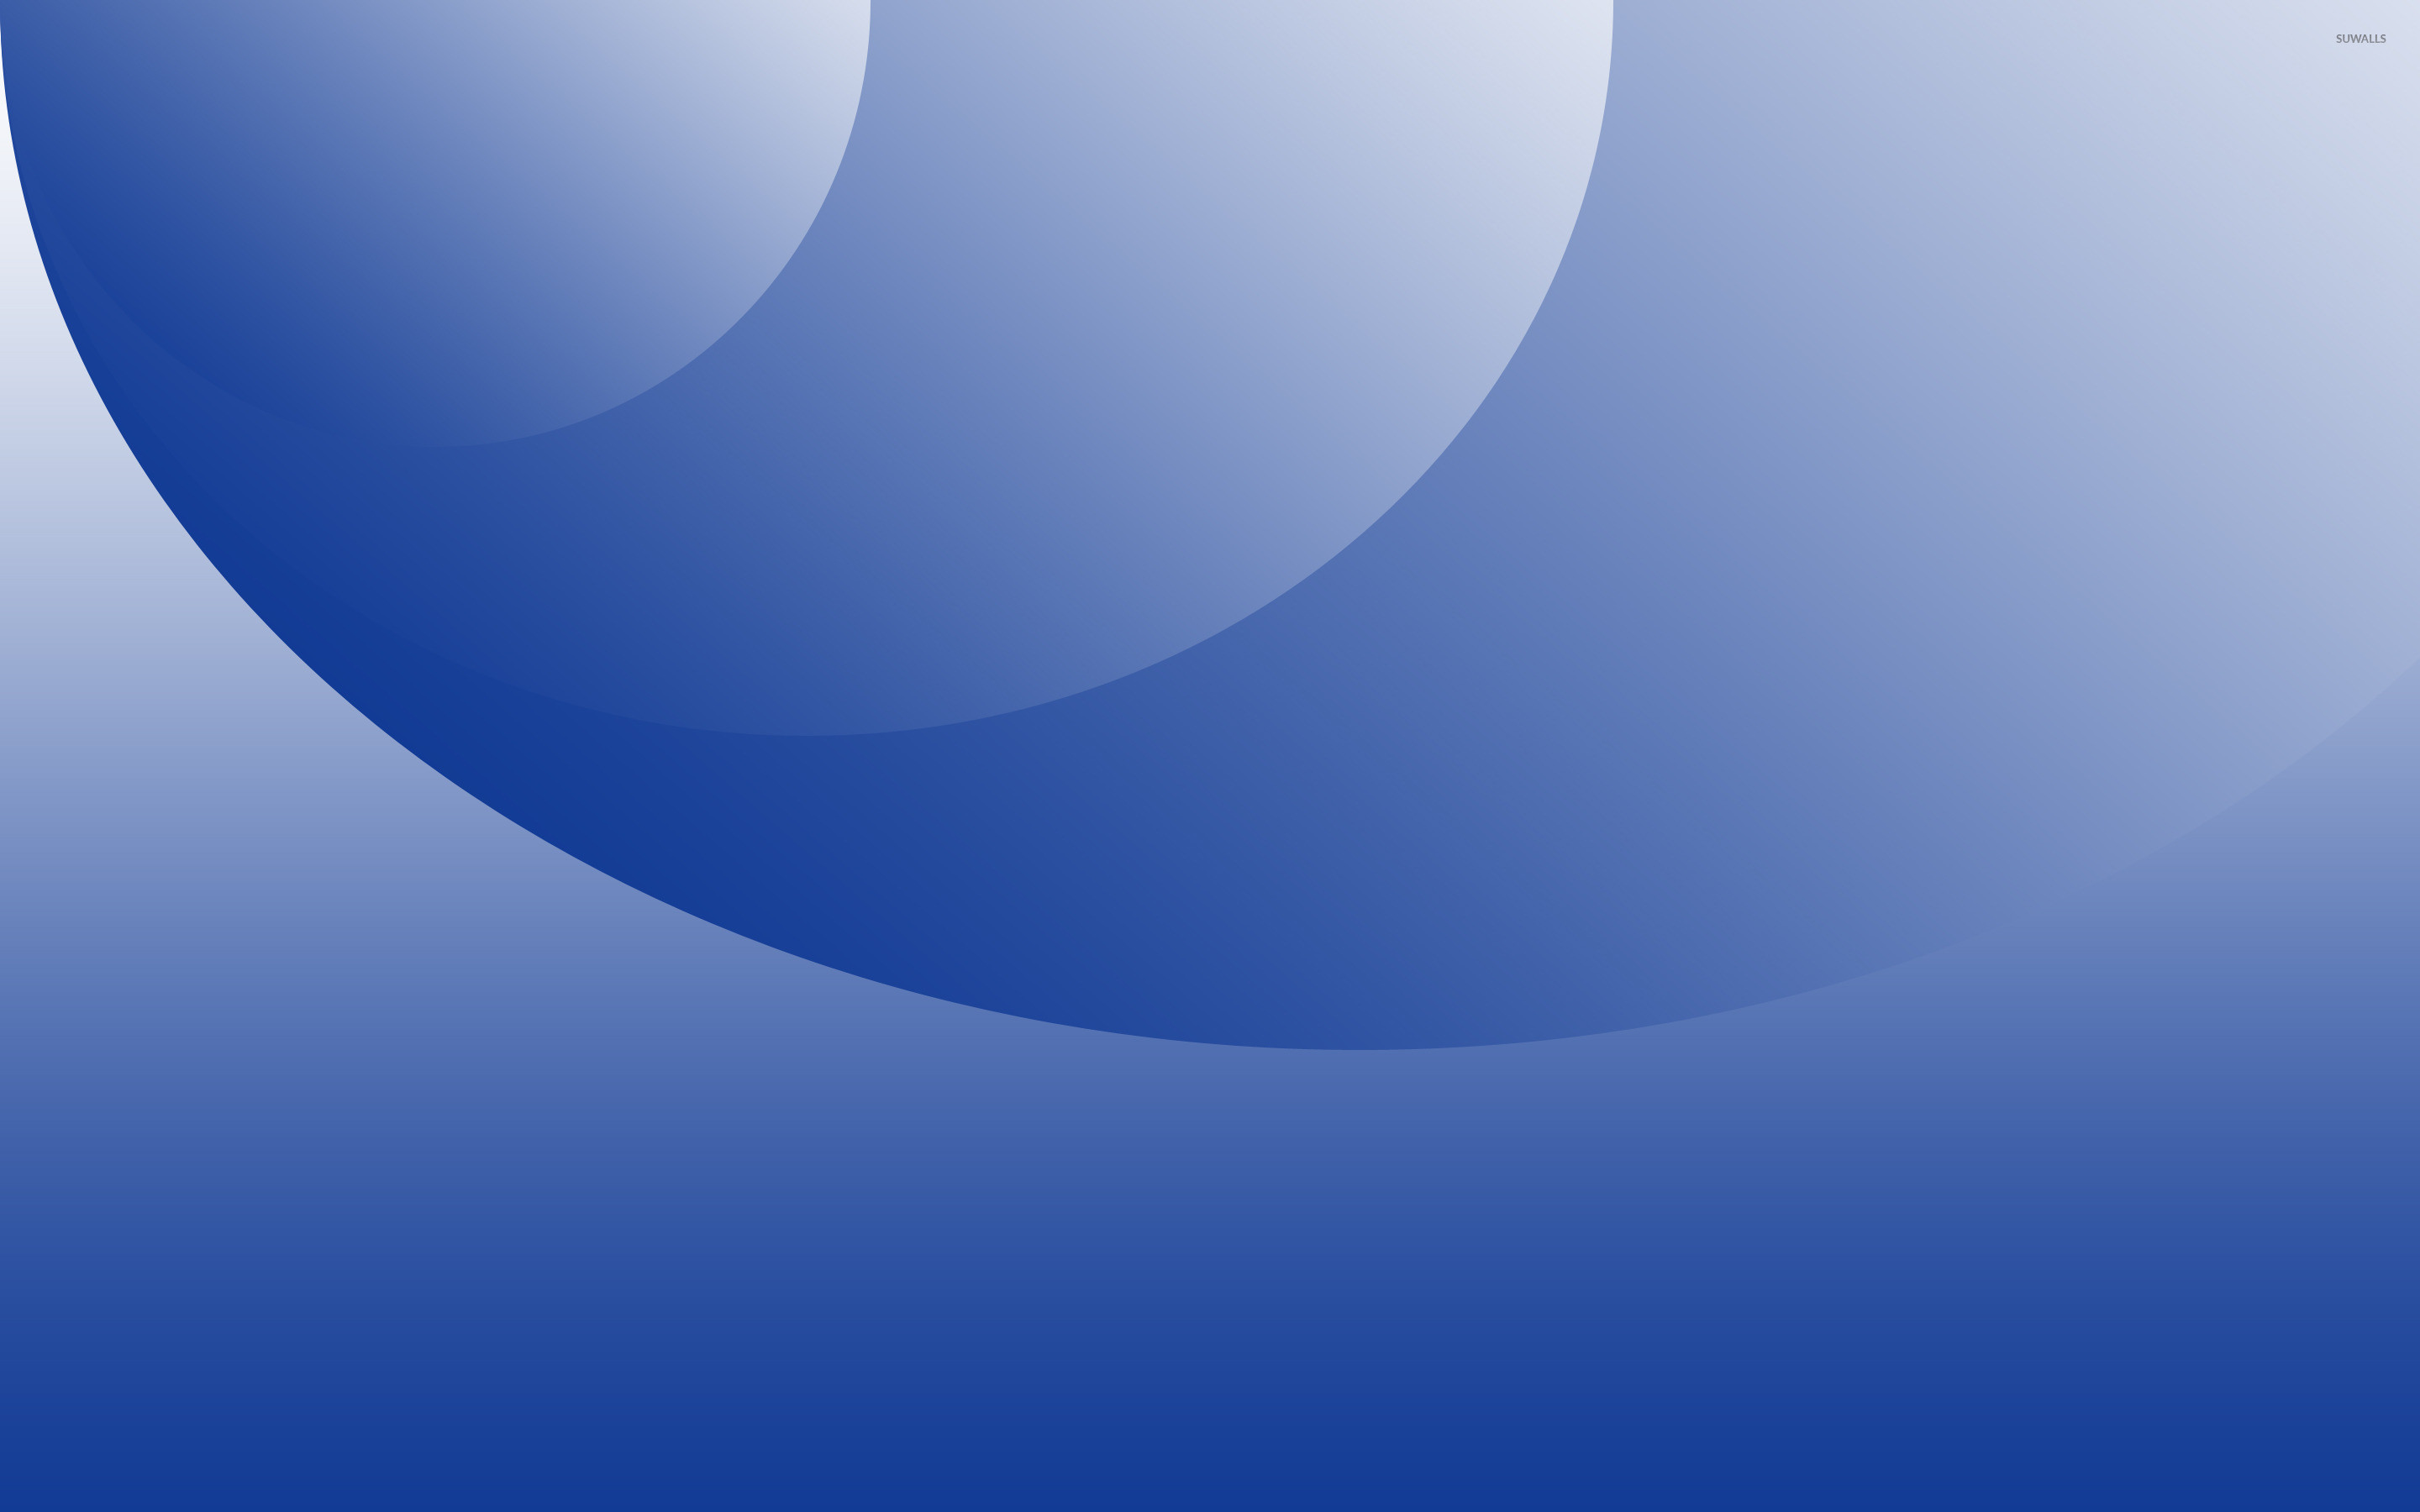 Blue circles and curves wallpaper